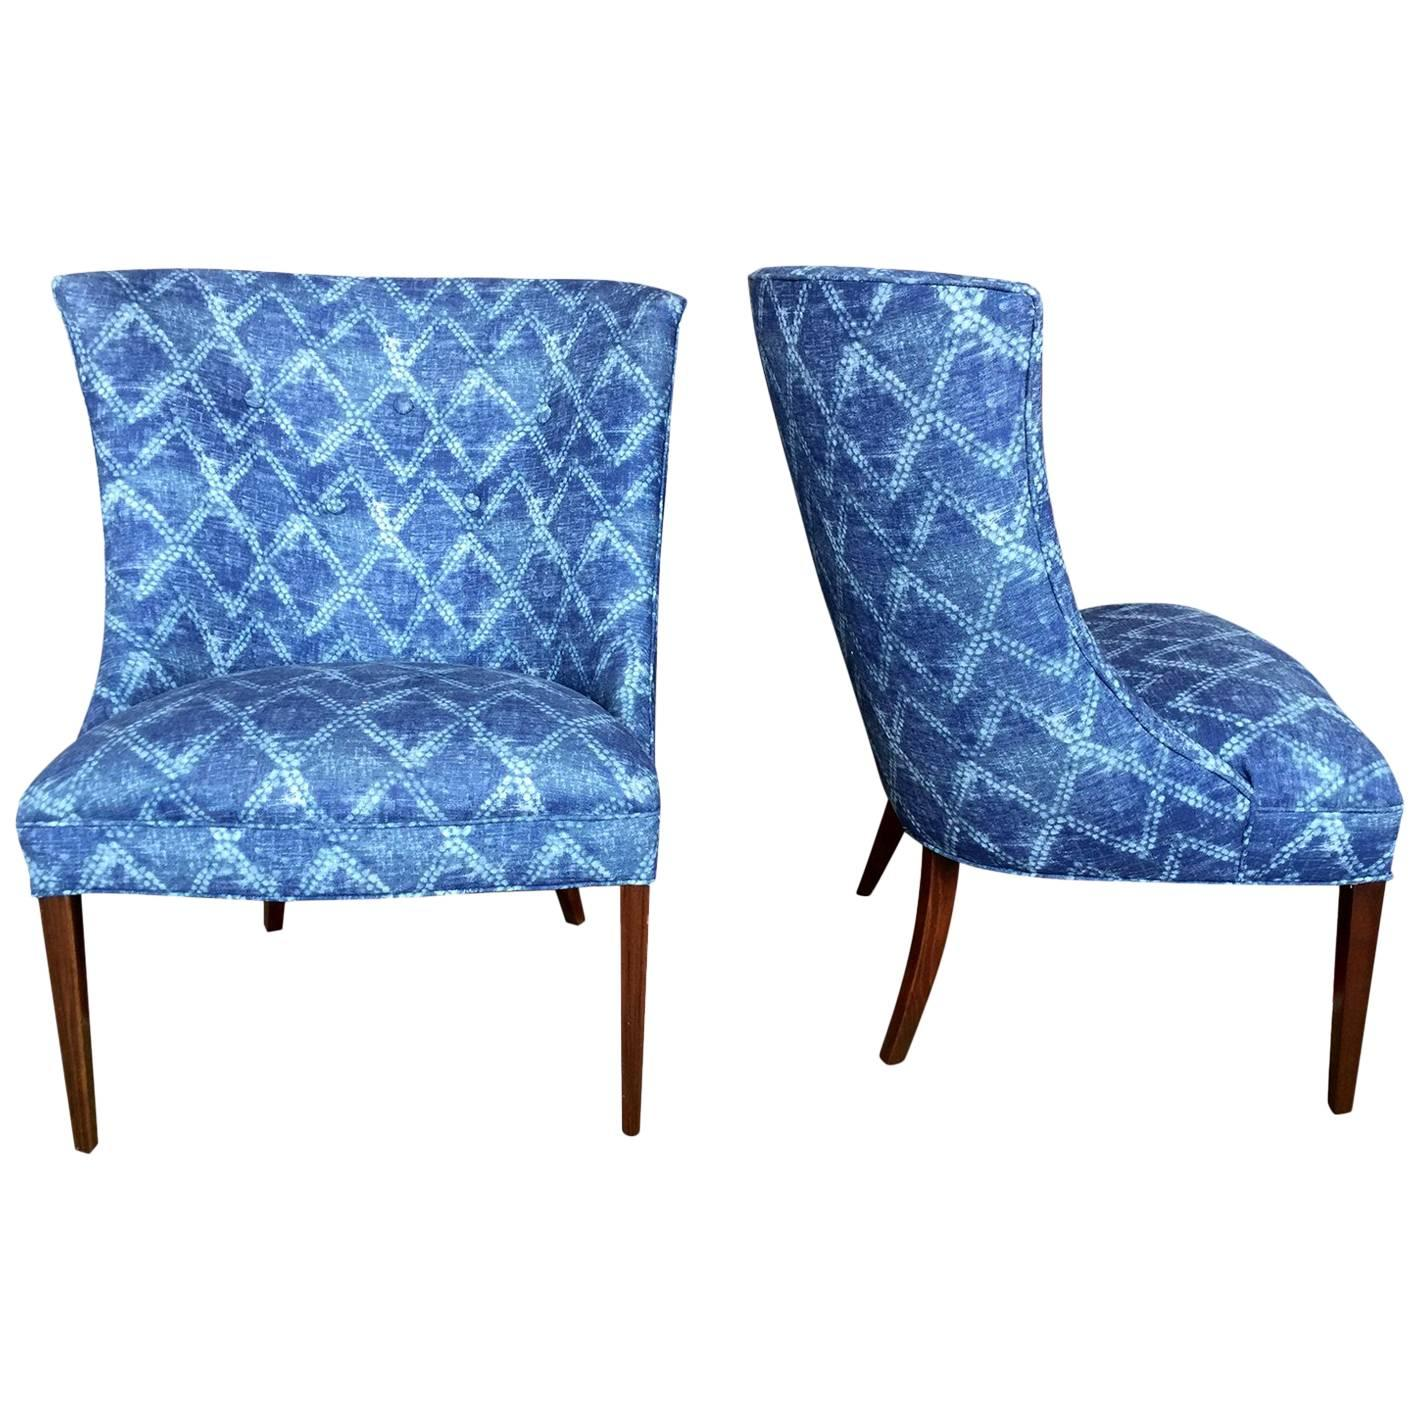 Pair Of Restored Vintage Wingback Chairs In Indigo Blue Shibori Fabric For  Sale